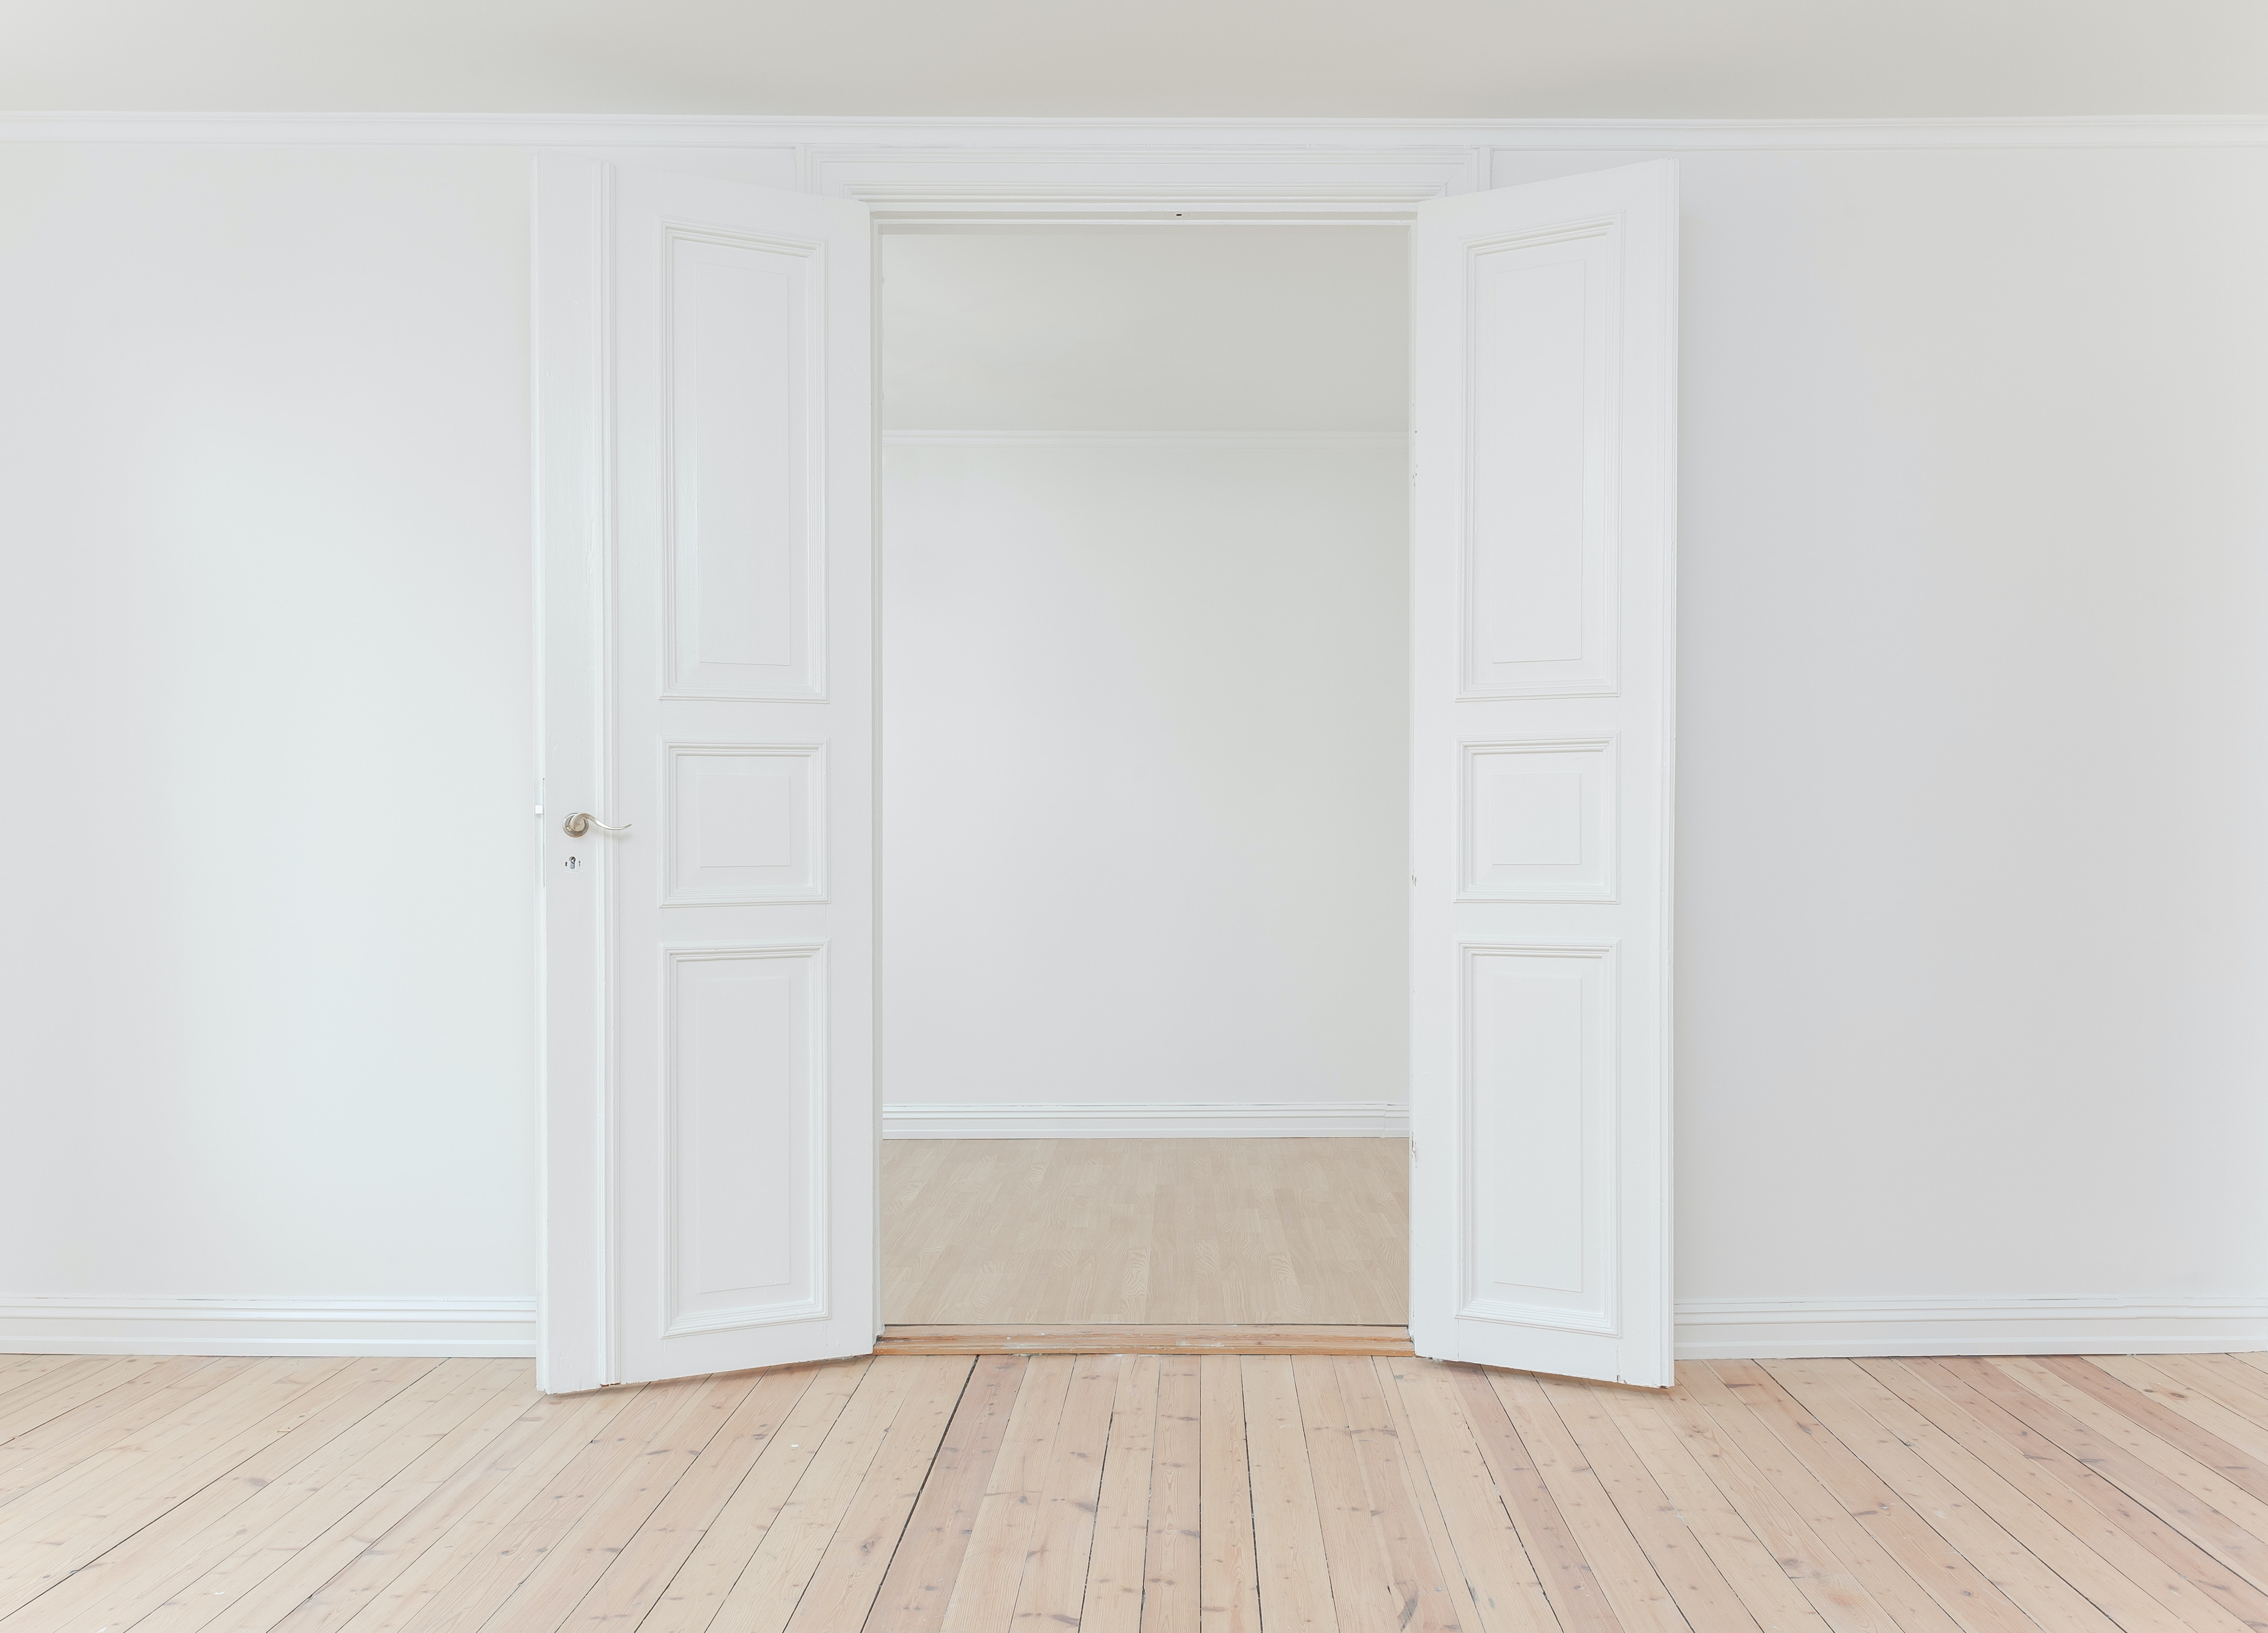 minimalist photography of open door